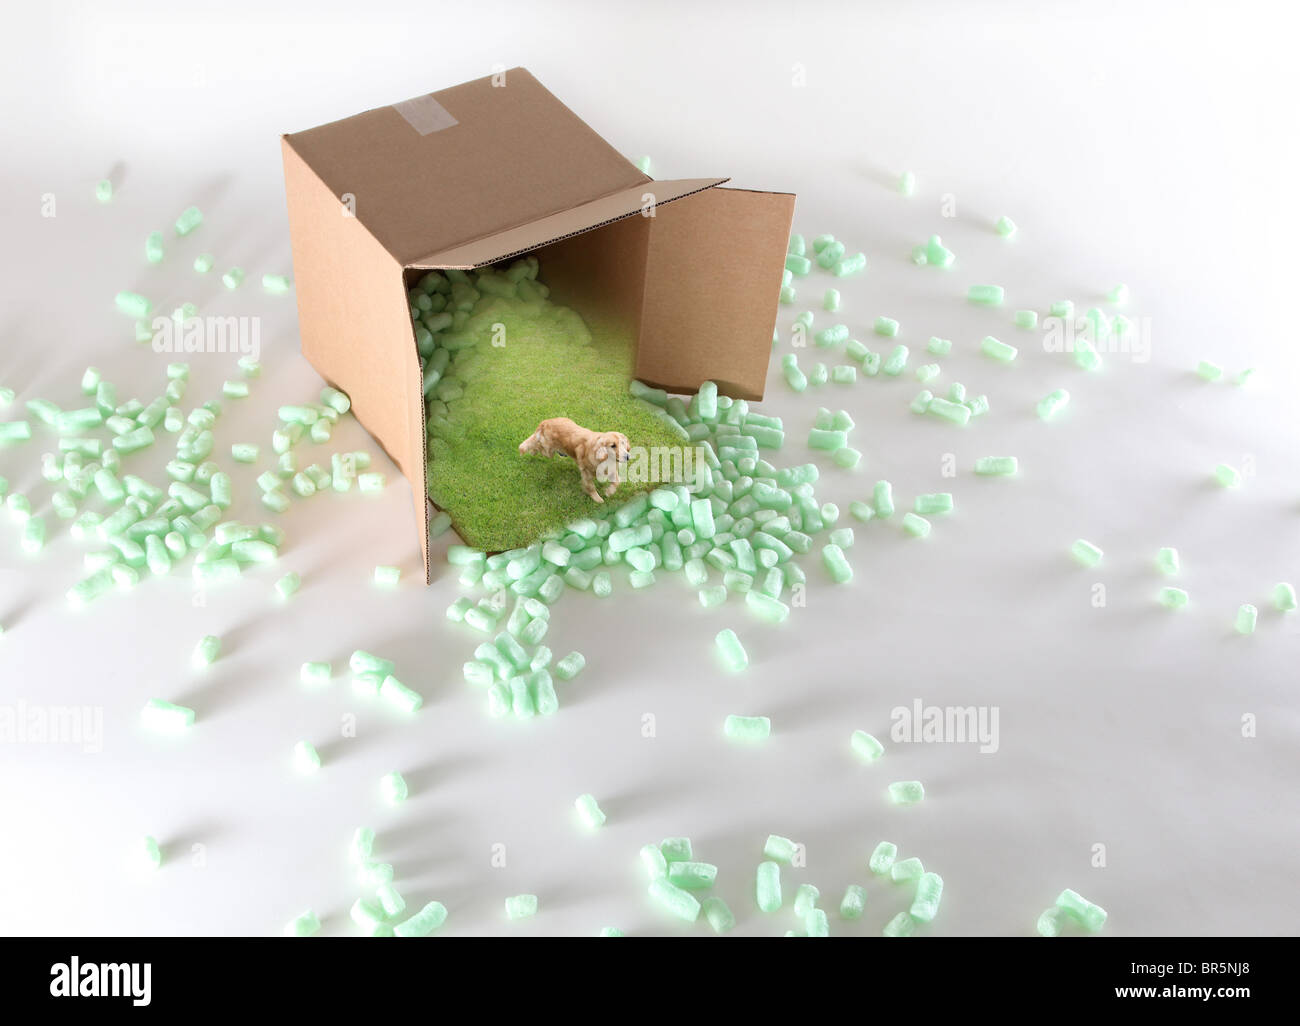 Dog runs from shipping package - Stock Image